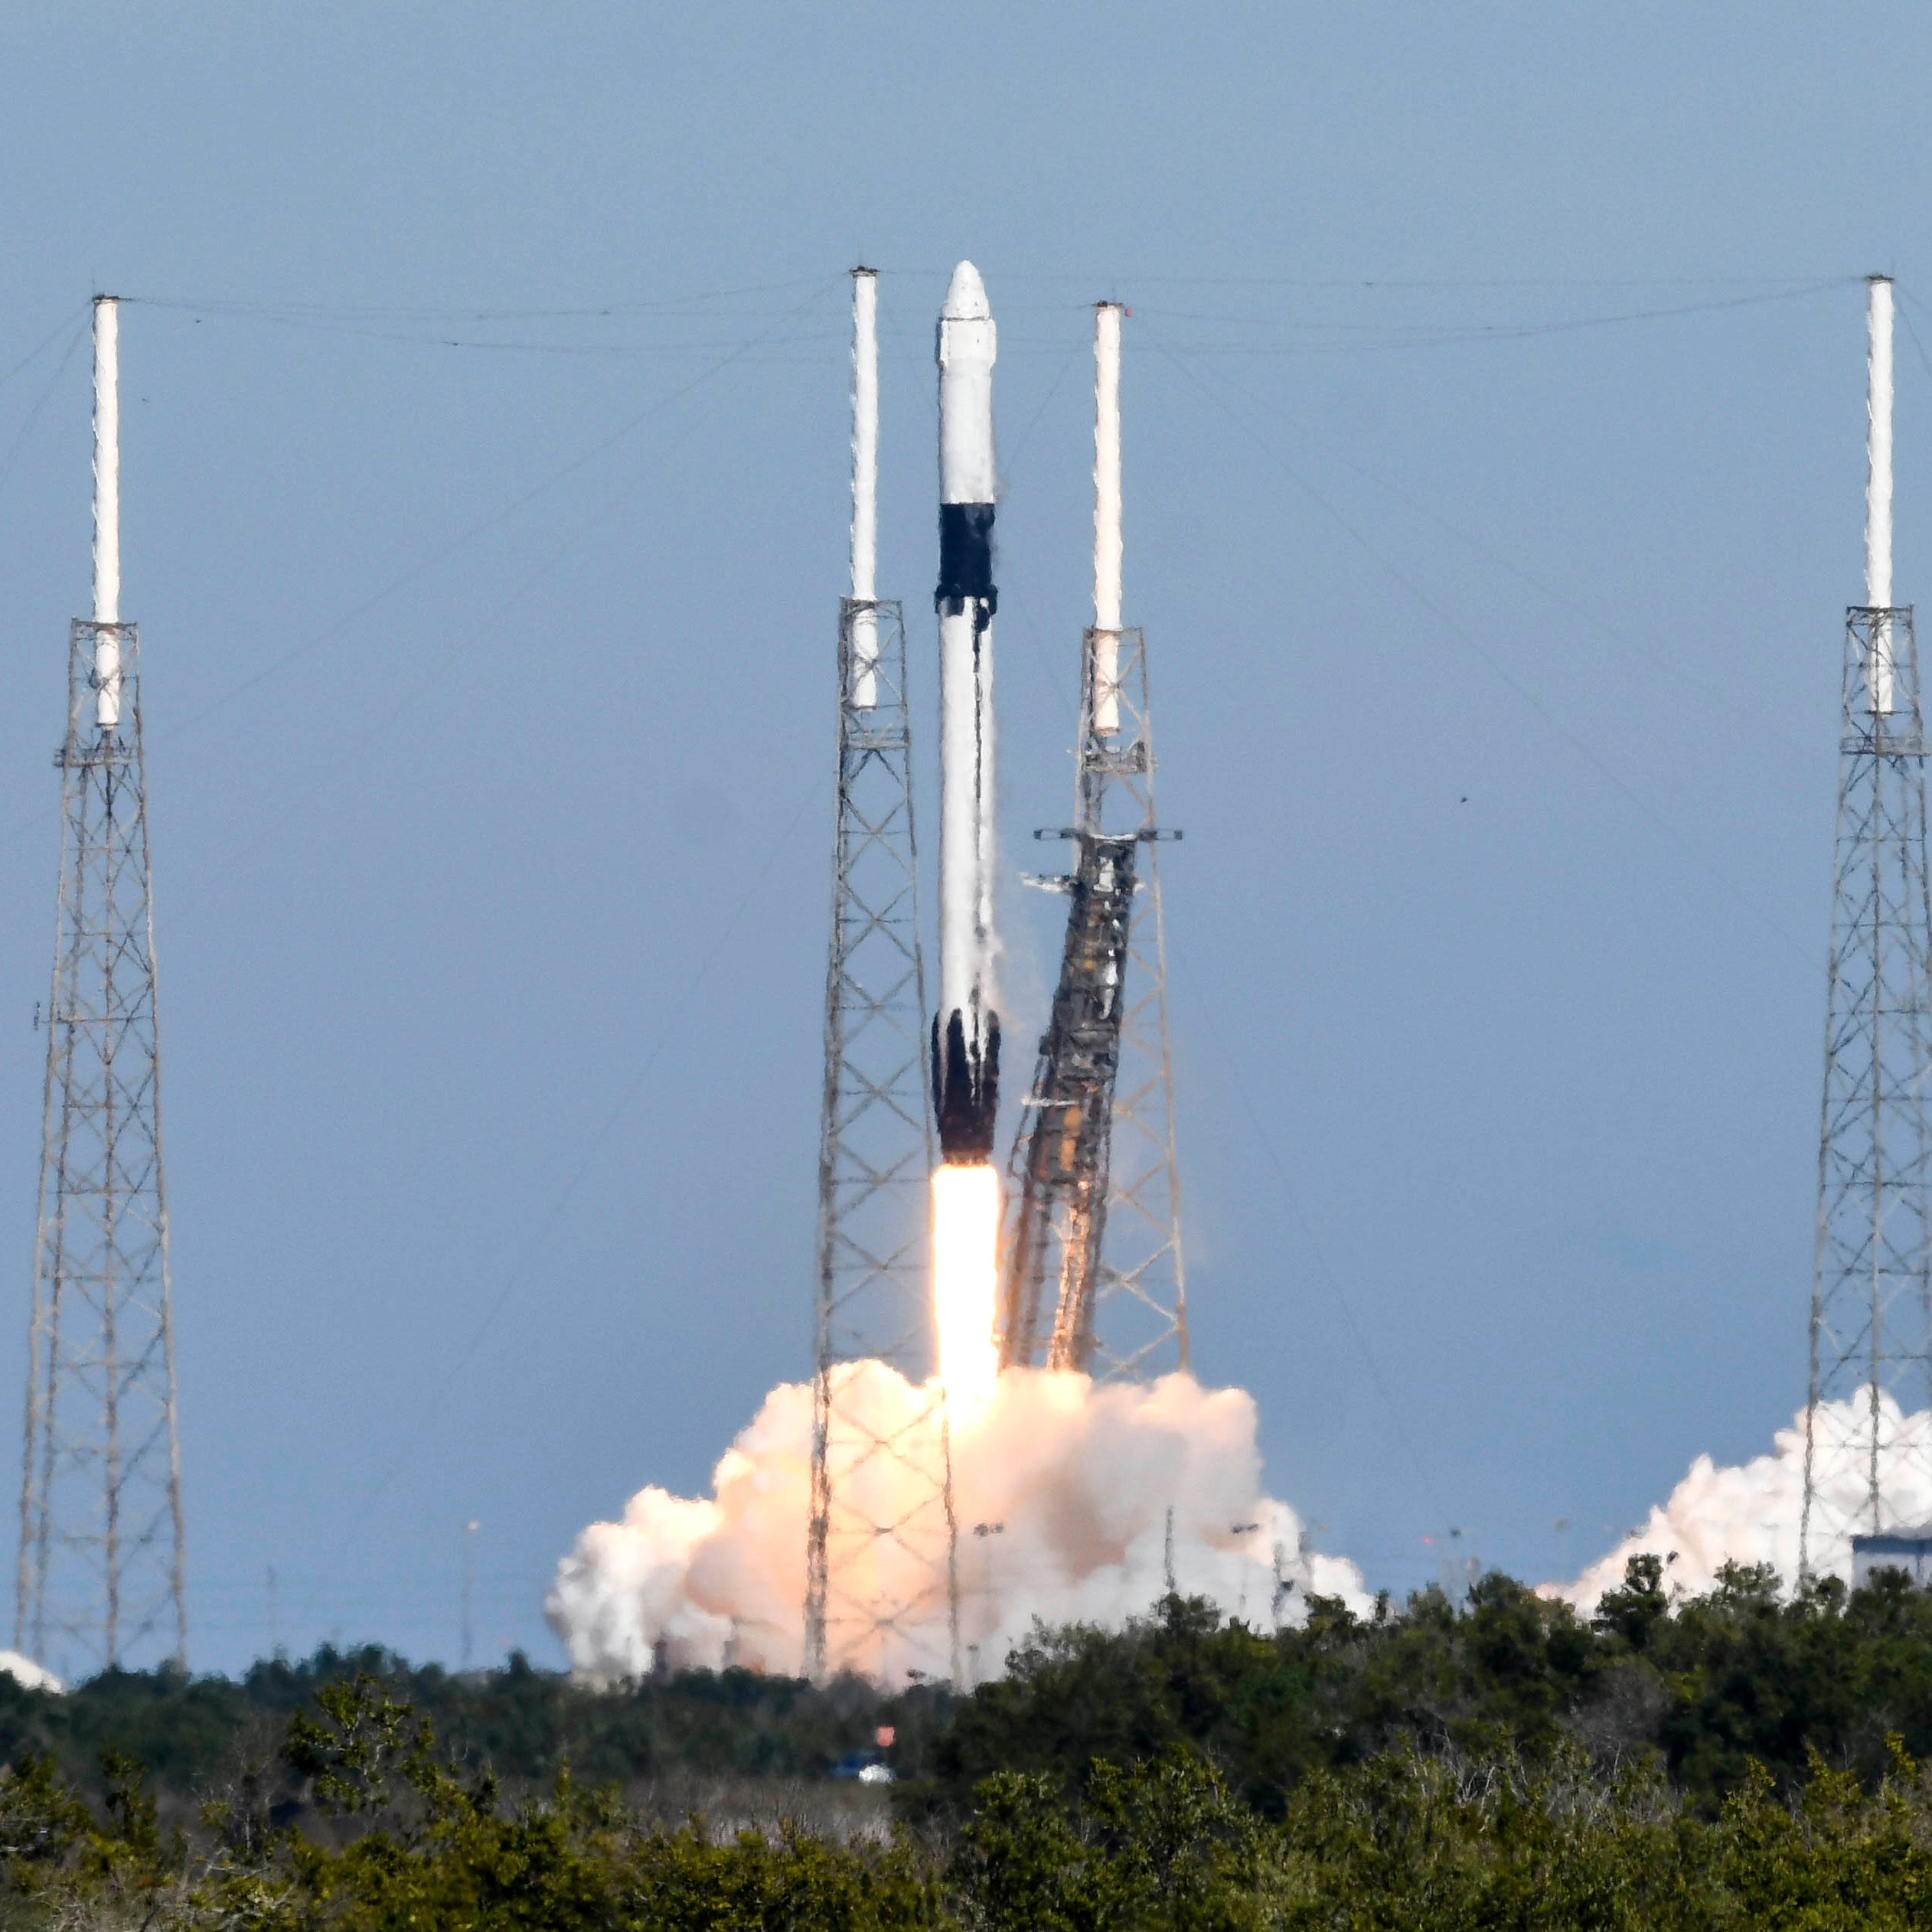 SpaceX Falcon 9 rocket launches Dragon to orbit, but booster lands in ocean